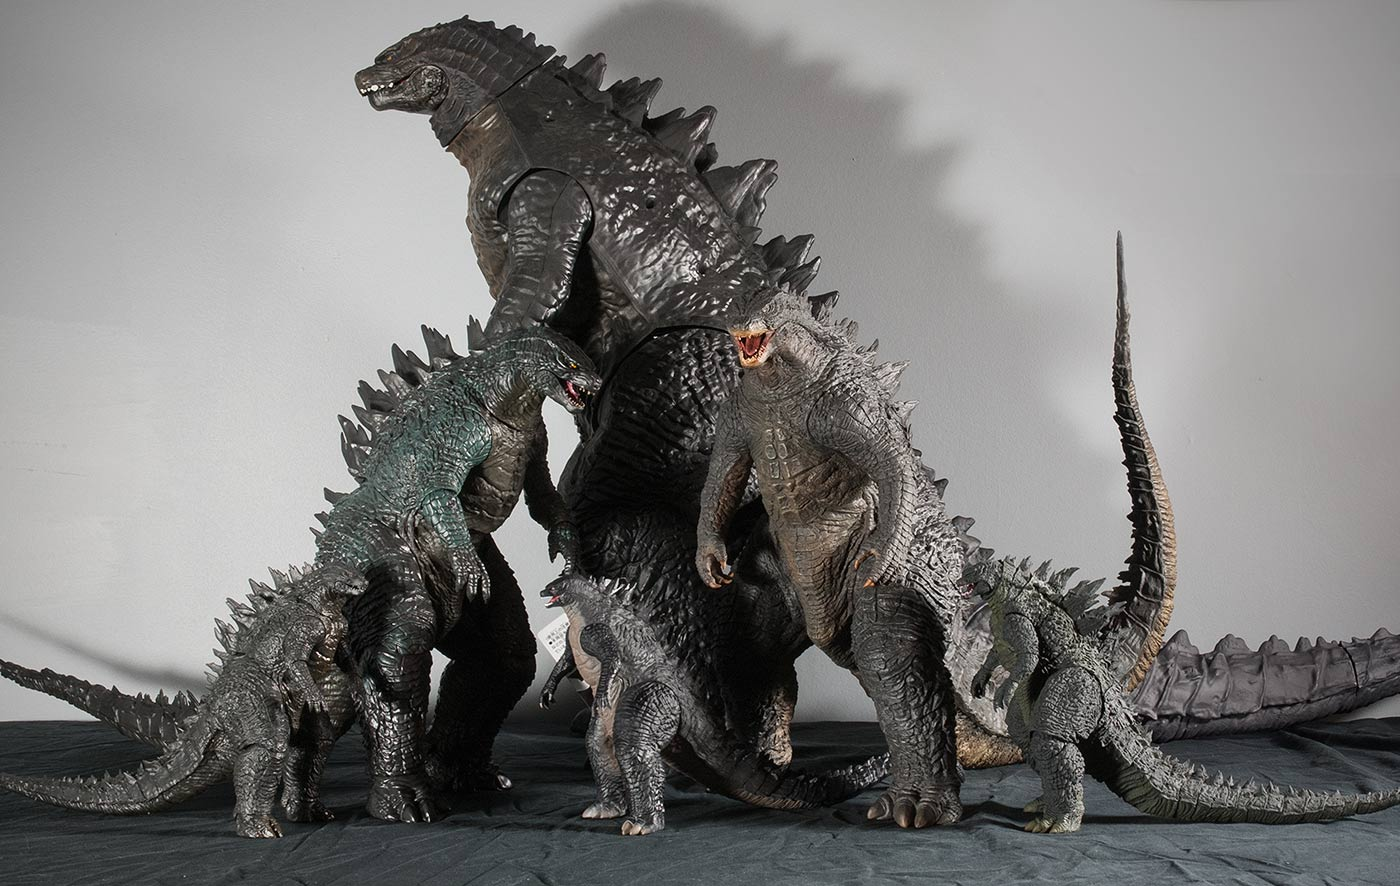 godzilla - photo #33